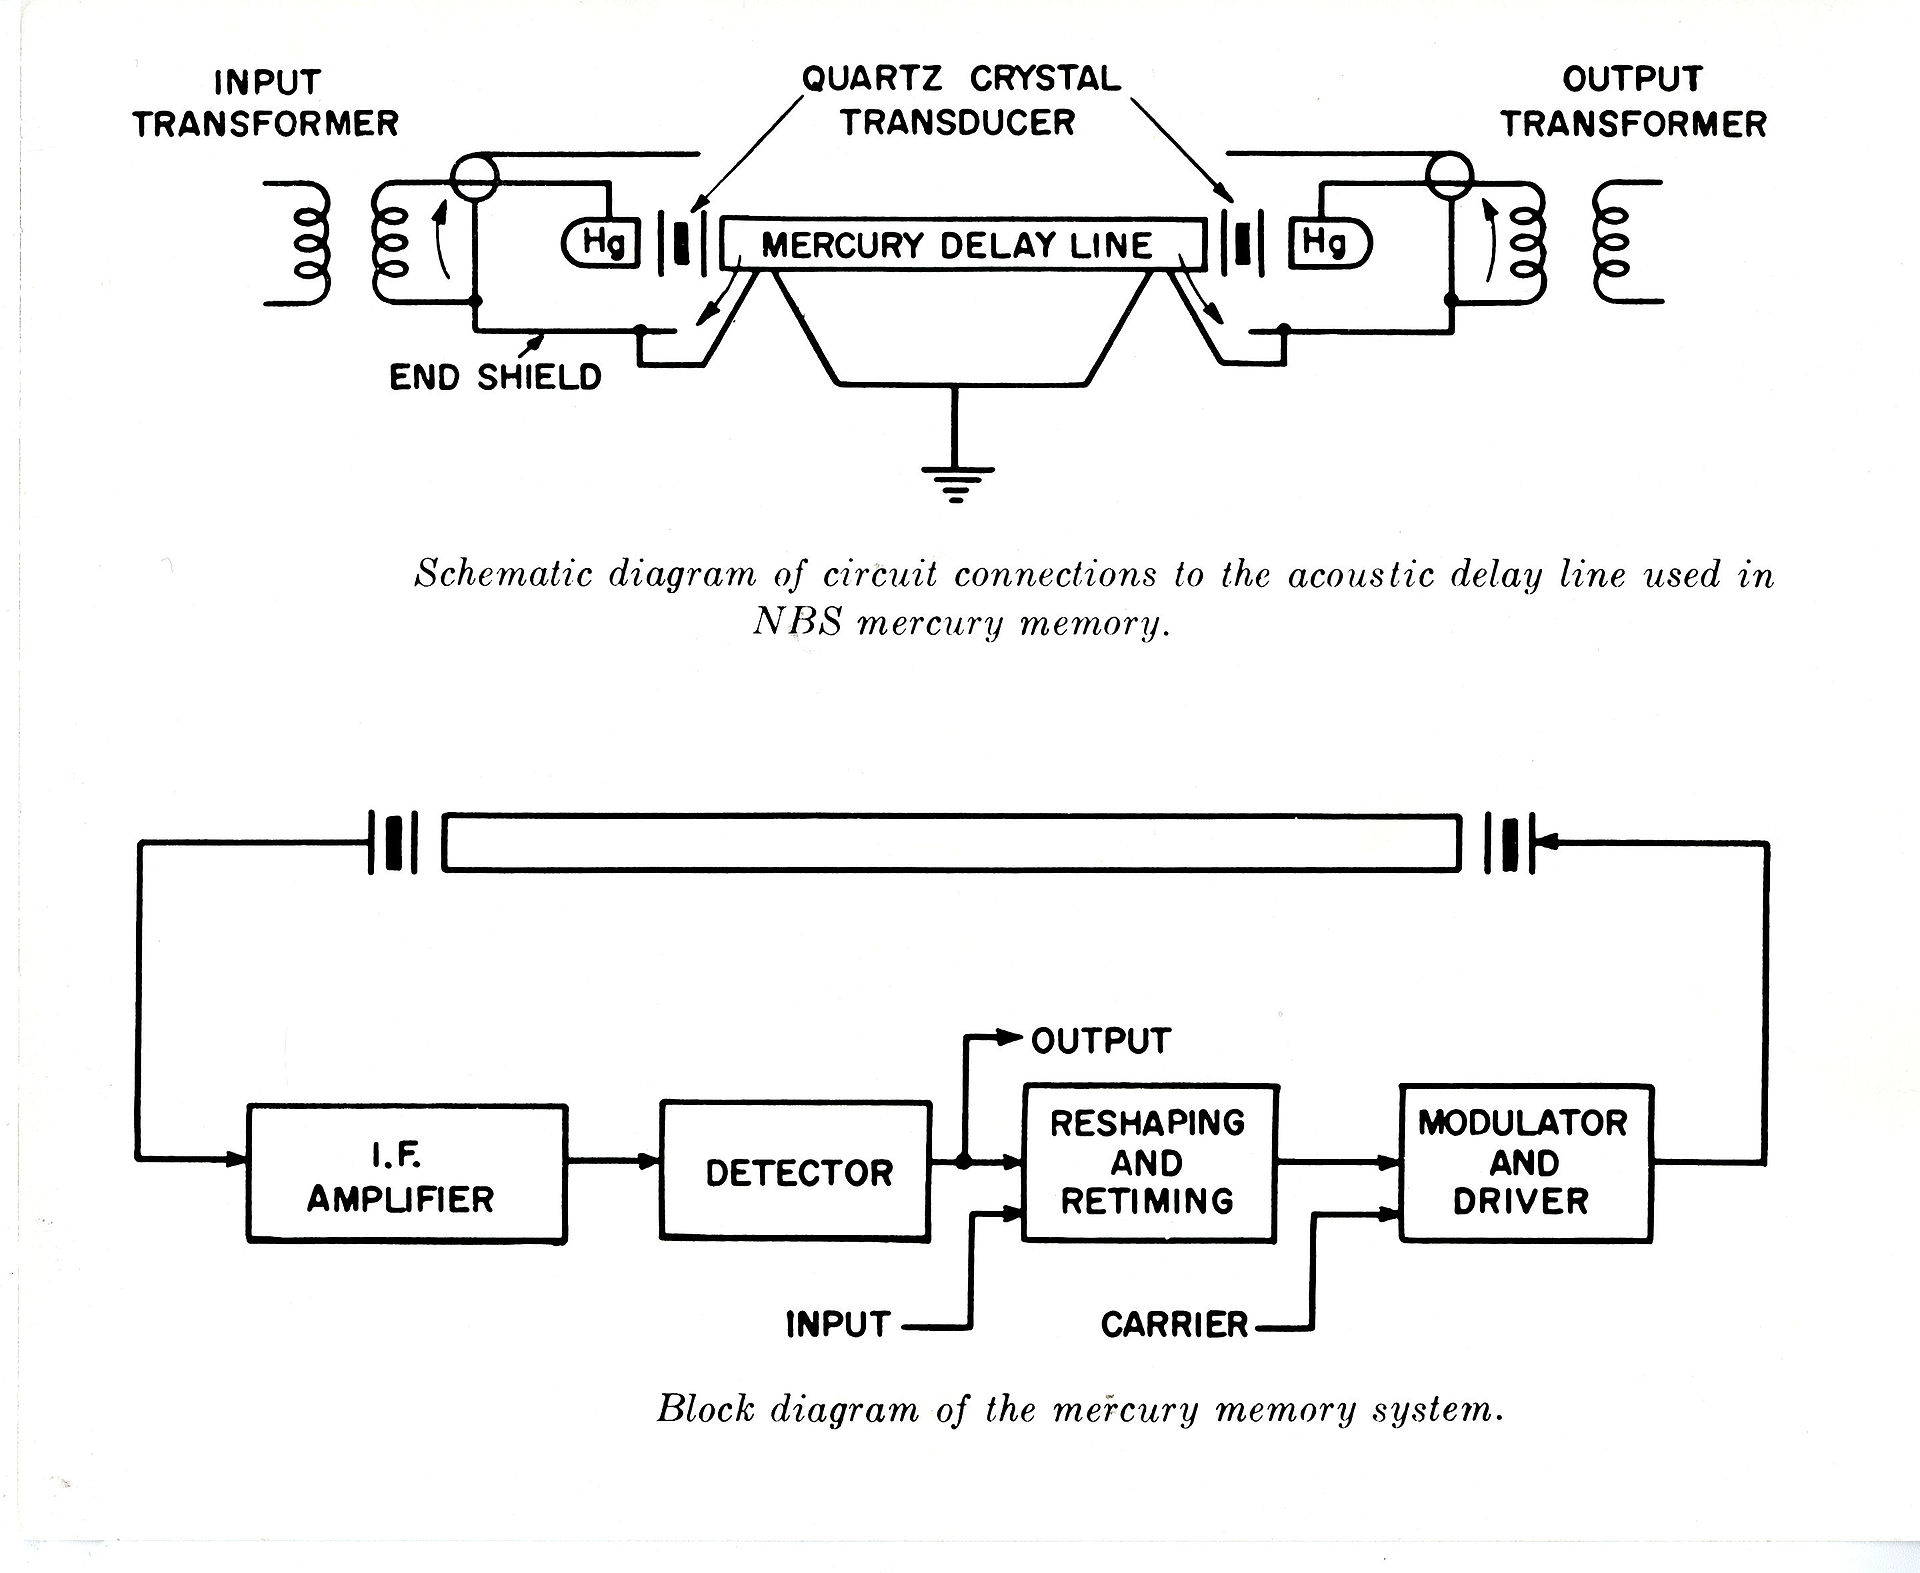 delay-line-memory-diagram